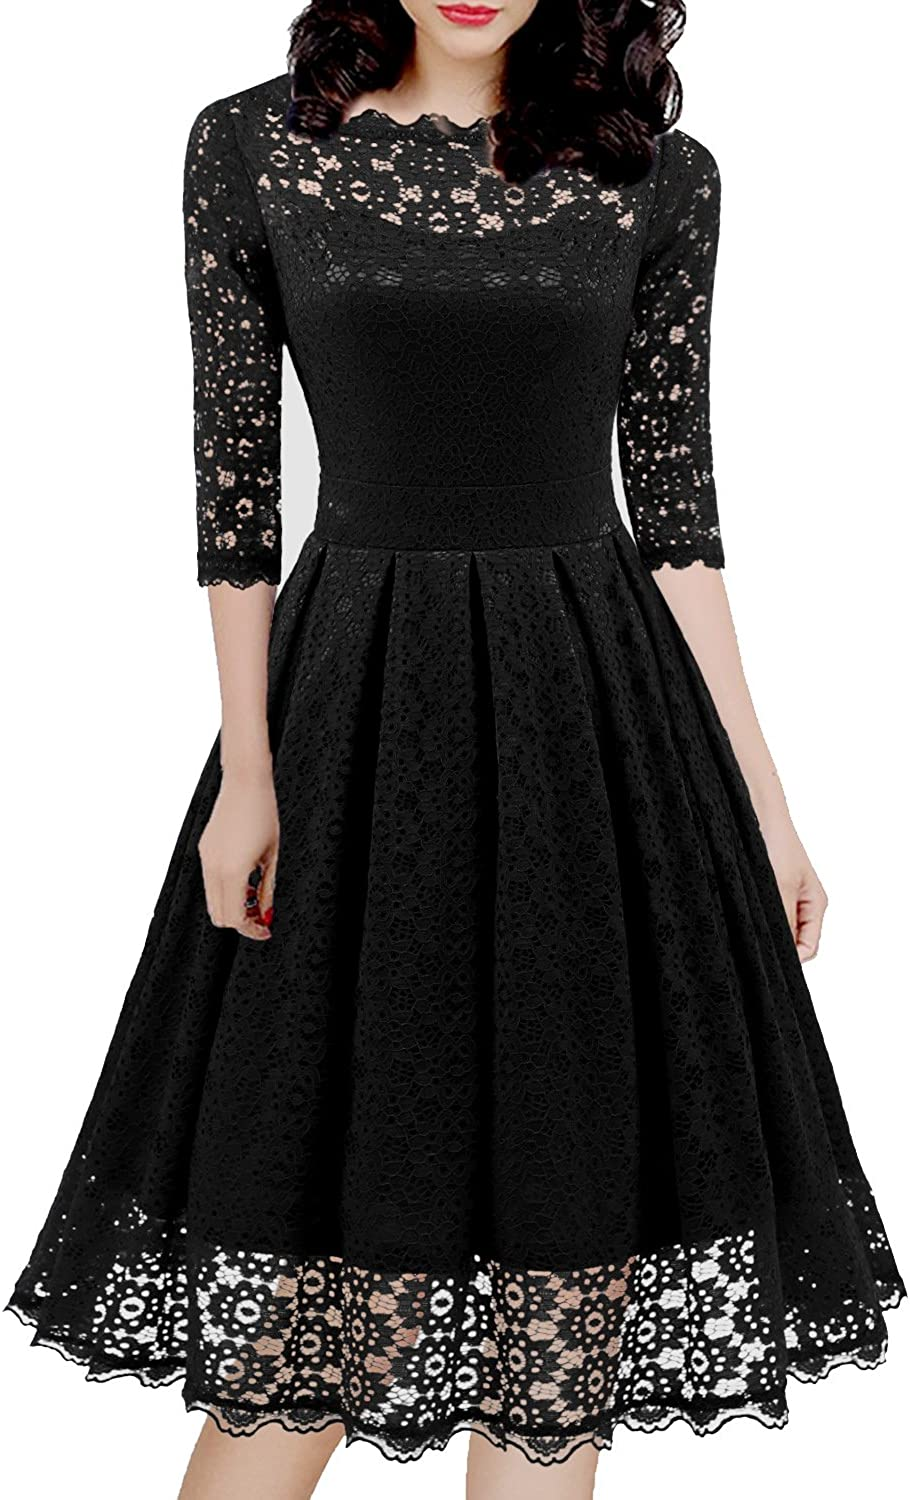 Women's 1950s Vintage Floral Lace Half Sleeve Formal Cocktail Party Casual Swing Dress 595